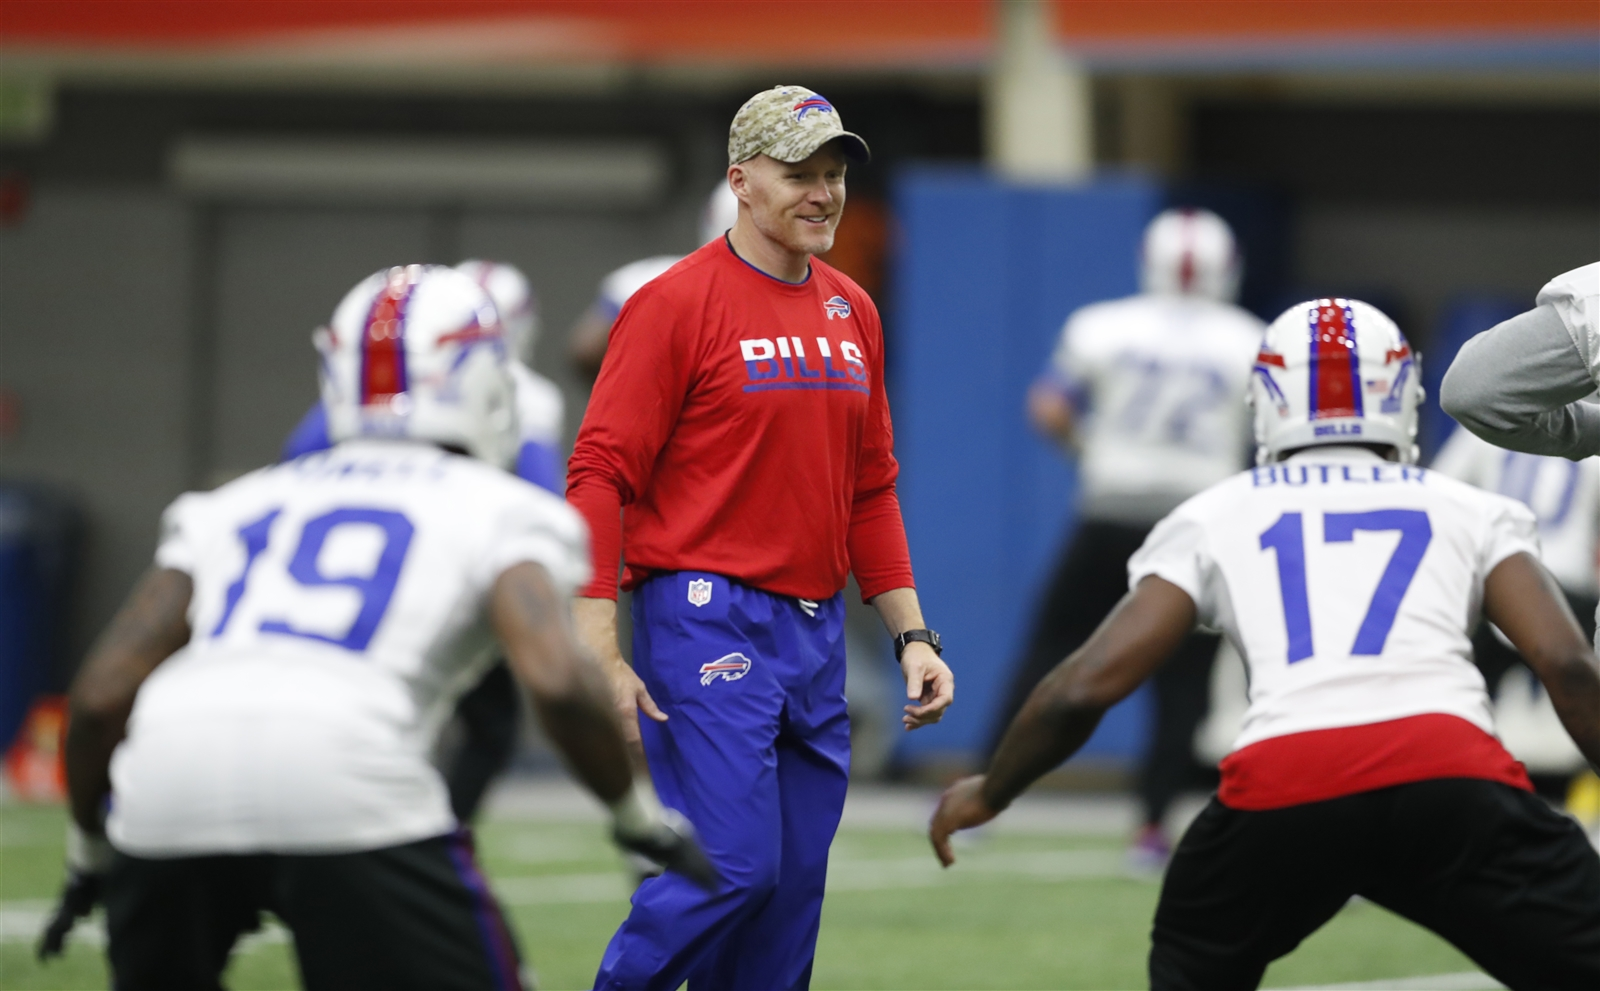 Bills coach Sean McDermott believes it's important to be close with his players. (Harry Scull Jr./Buffalo News)